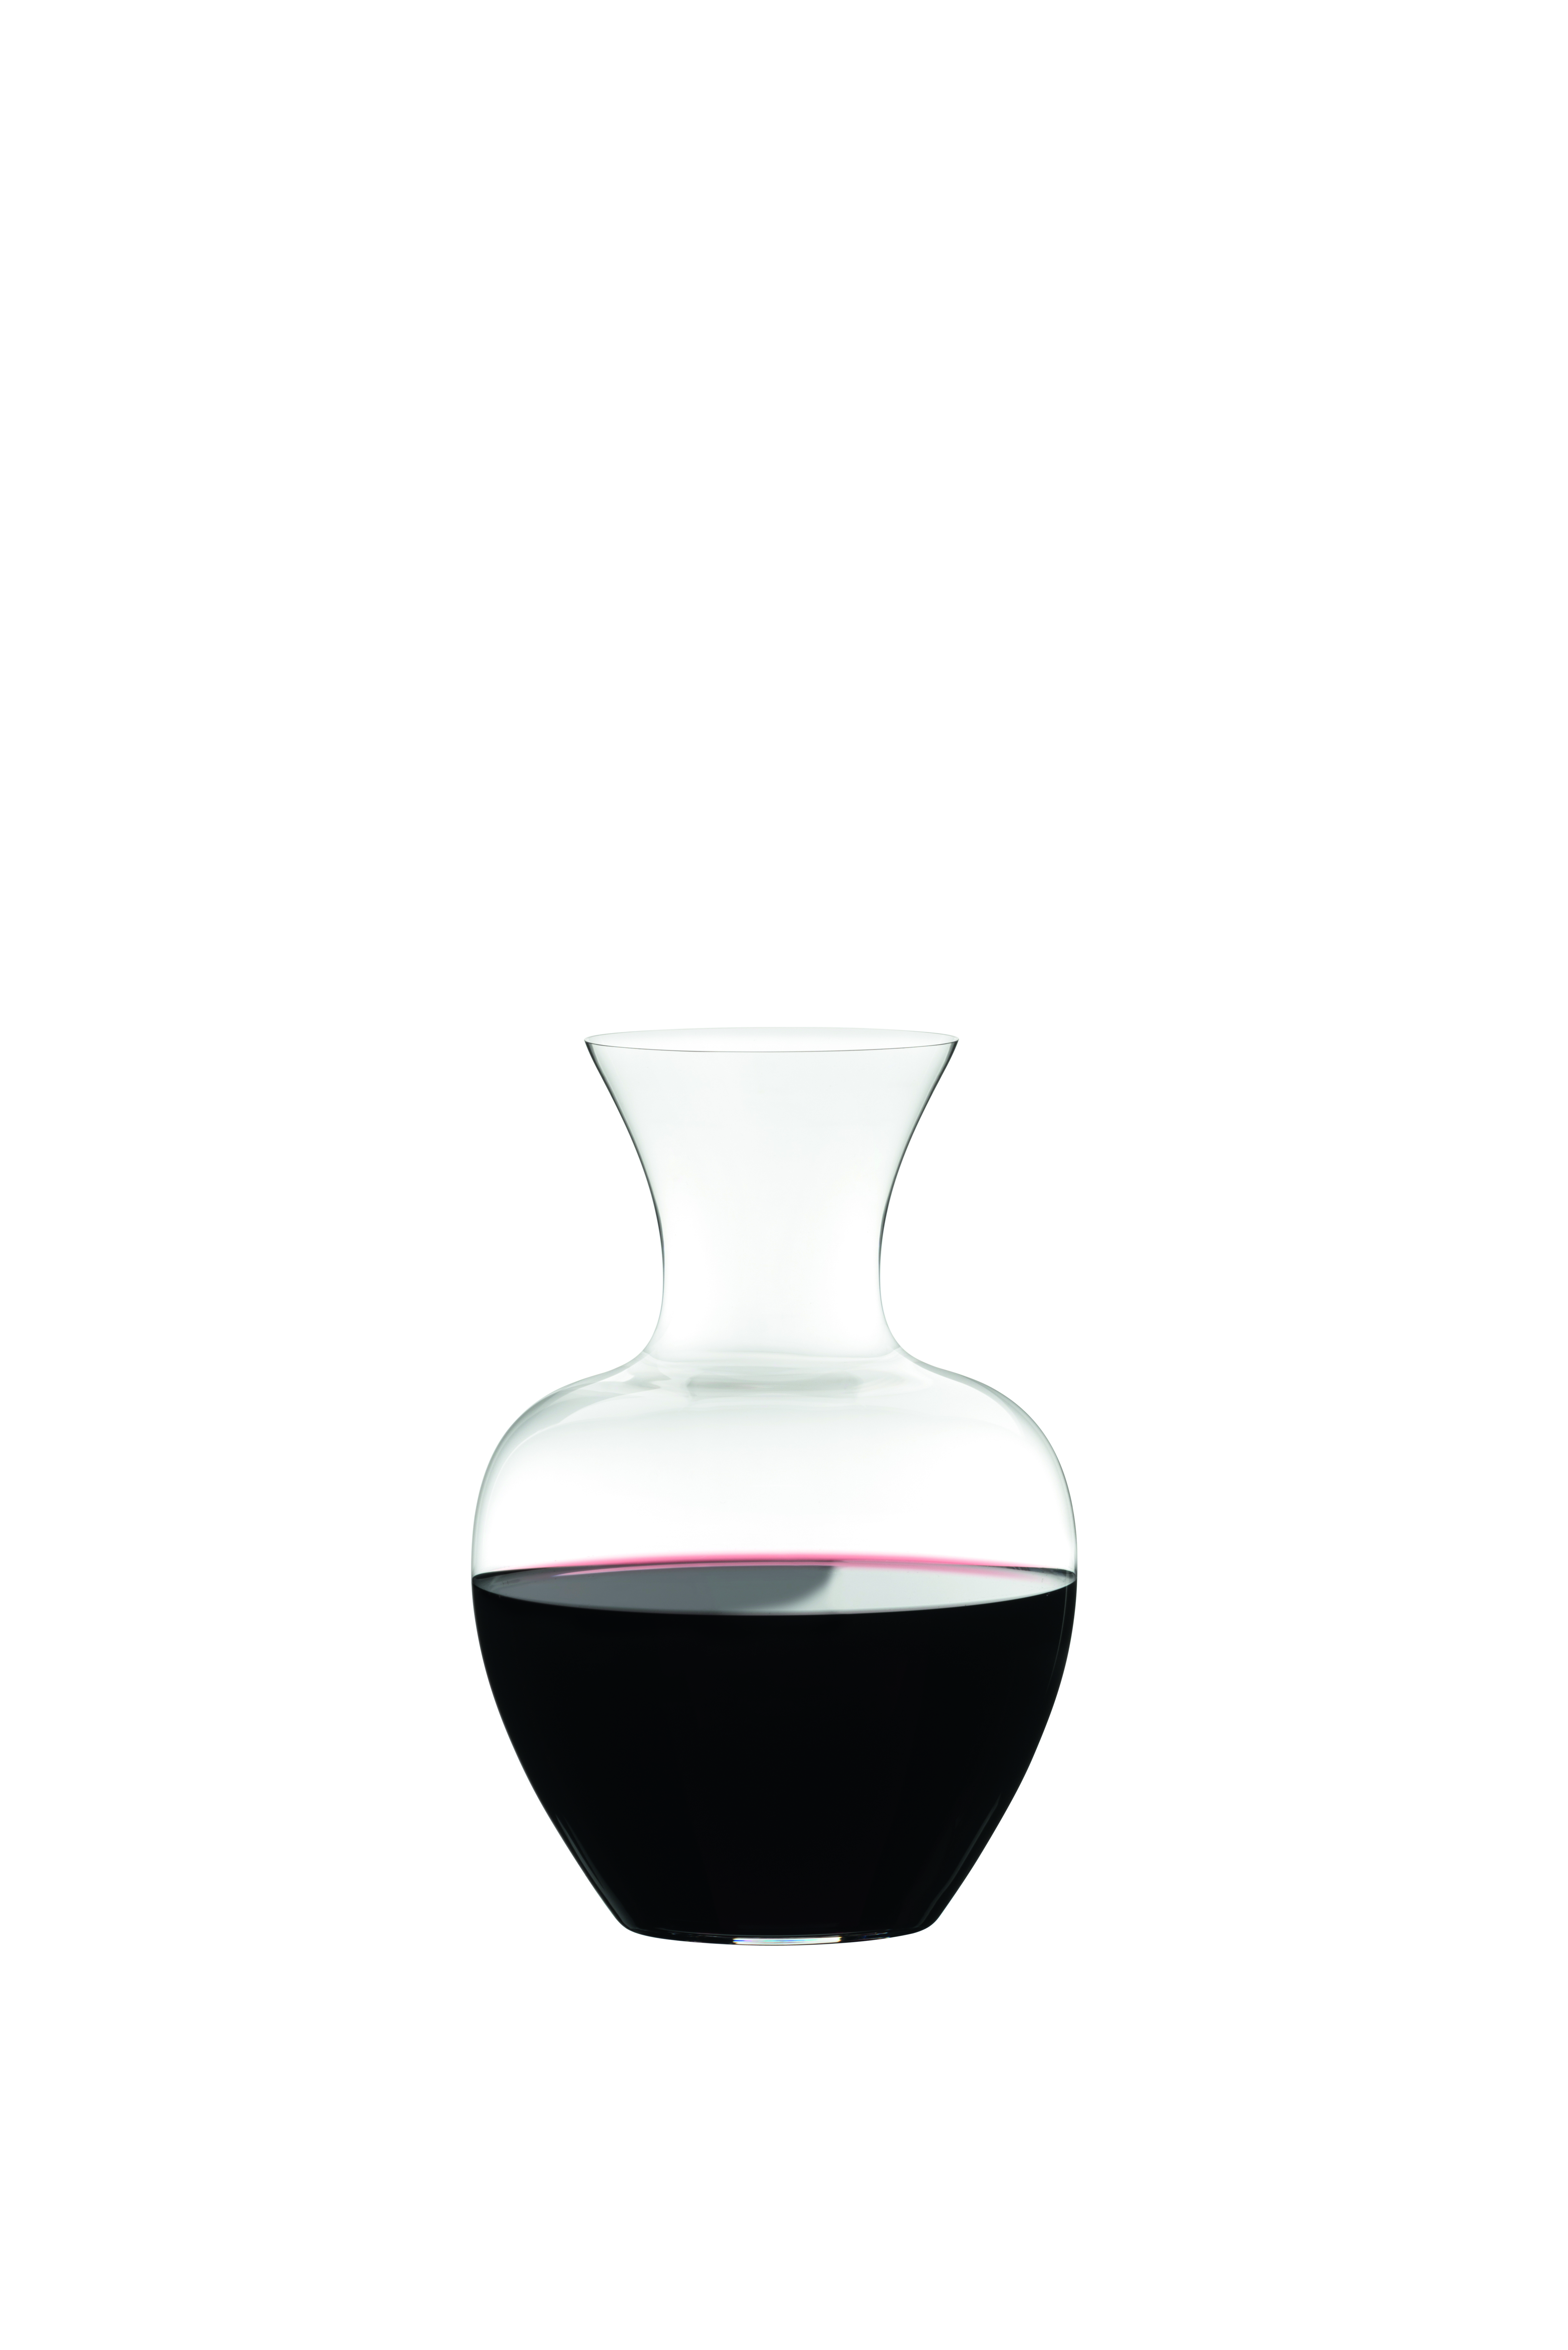 Riedel Apple Karaff 15 liter